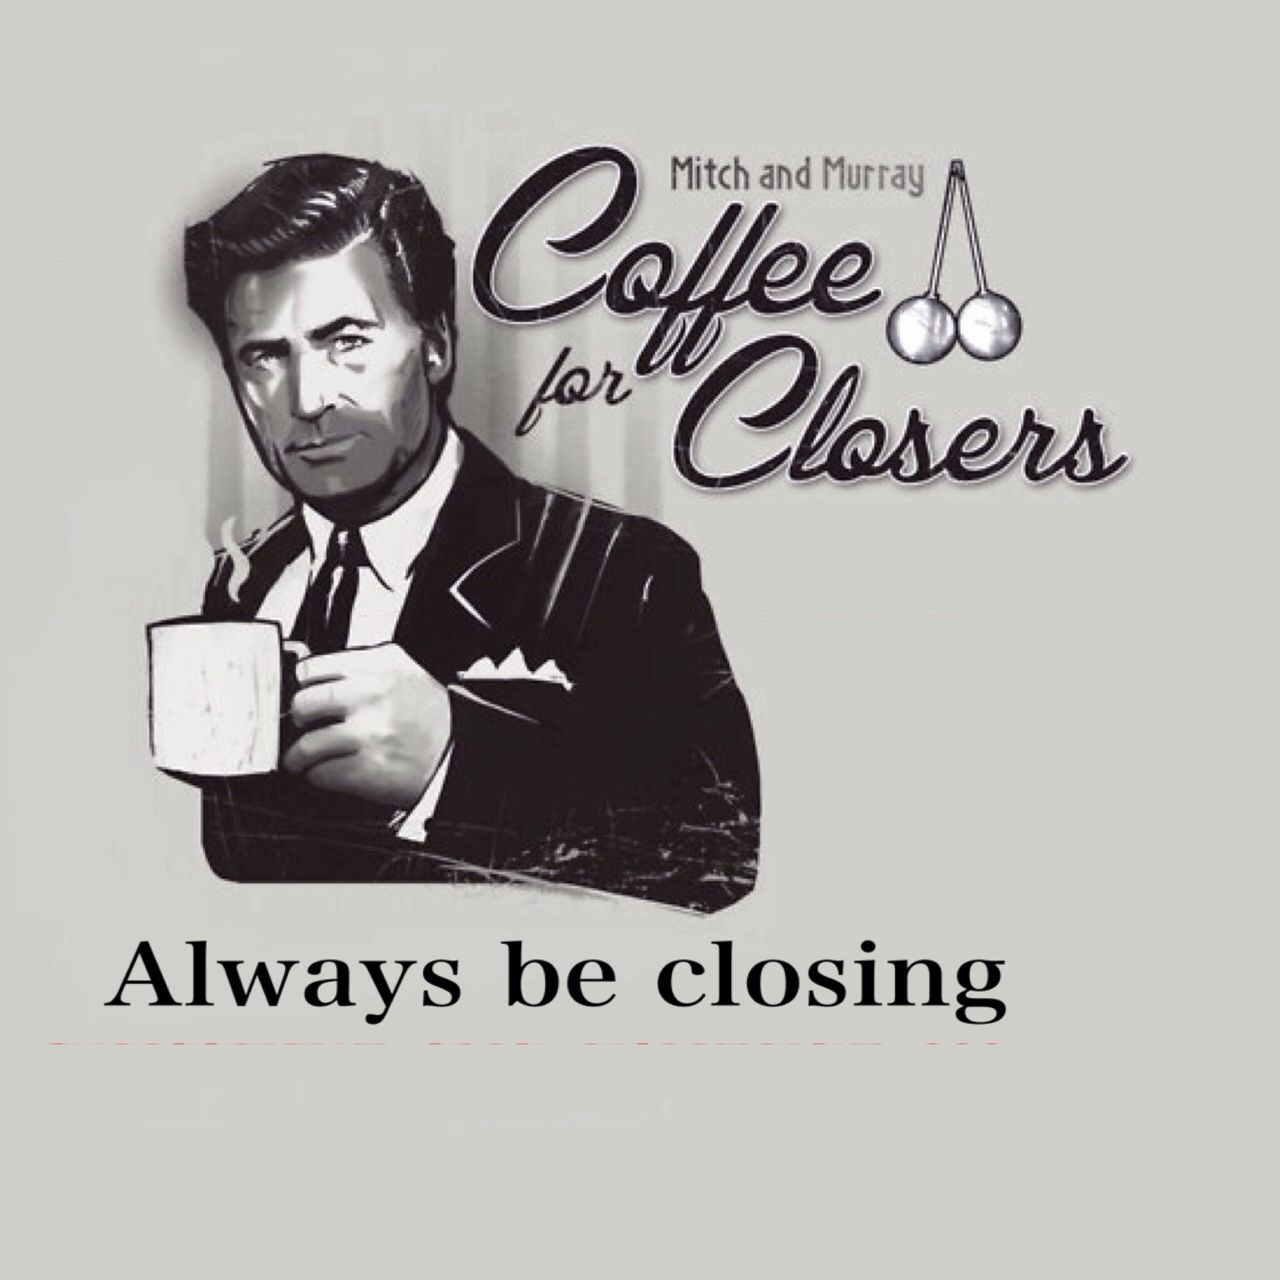 Glengarry Glen Ross Quotes Glengarry Glen Ross | Awesome quotes | Pinterest | Coffee, Movies  Glengarry Glen Ross Quotes